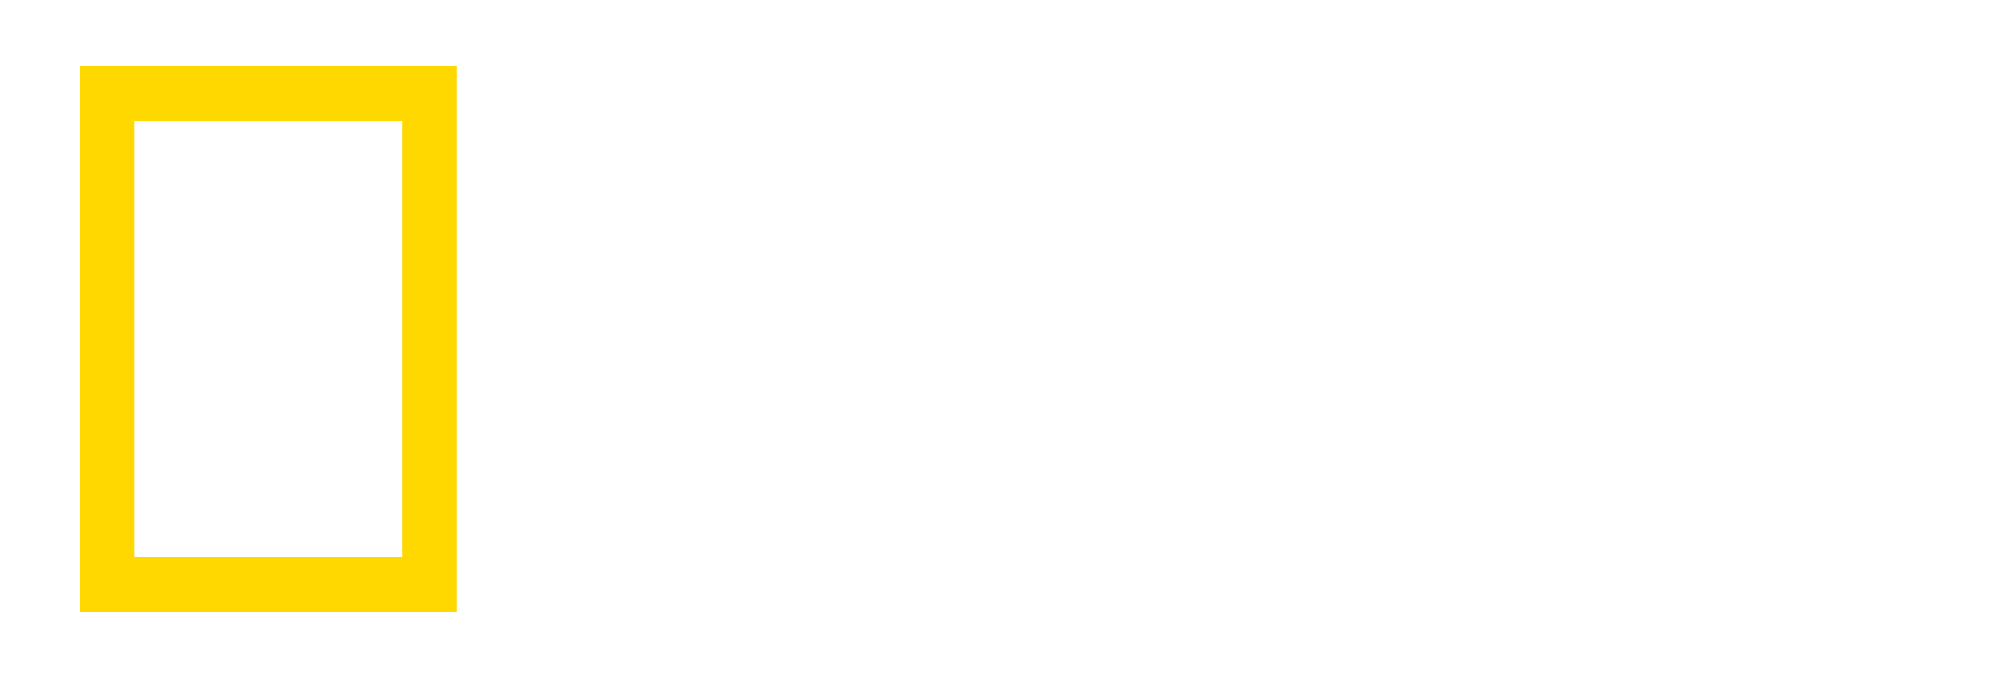 NG_LOGO_white.png - National Geographic Channel Logo PNG